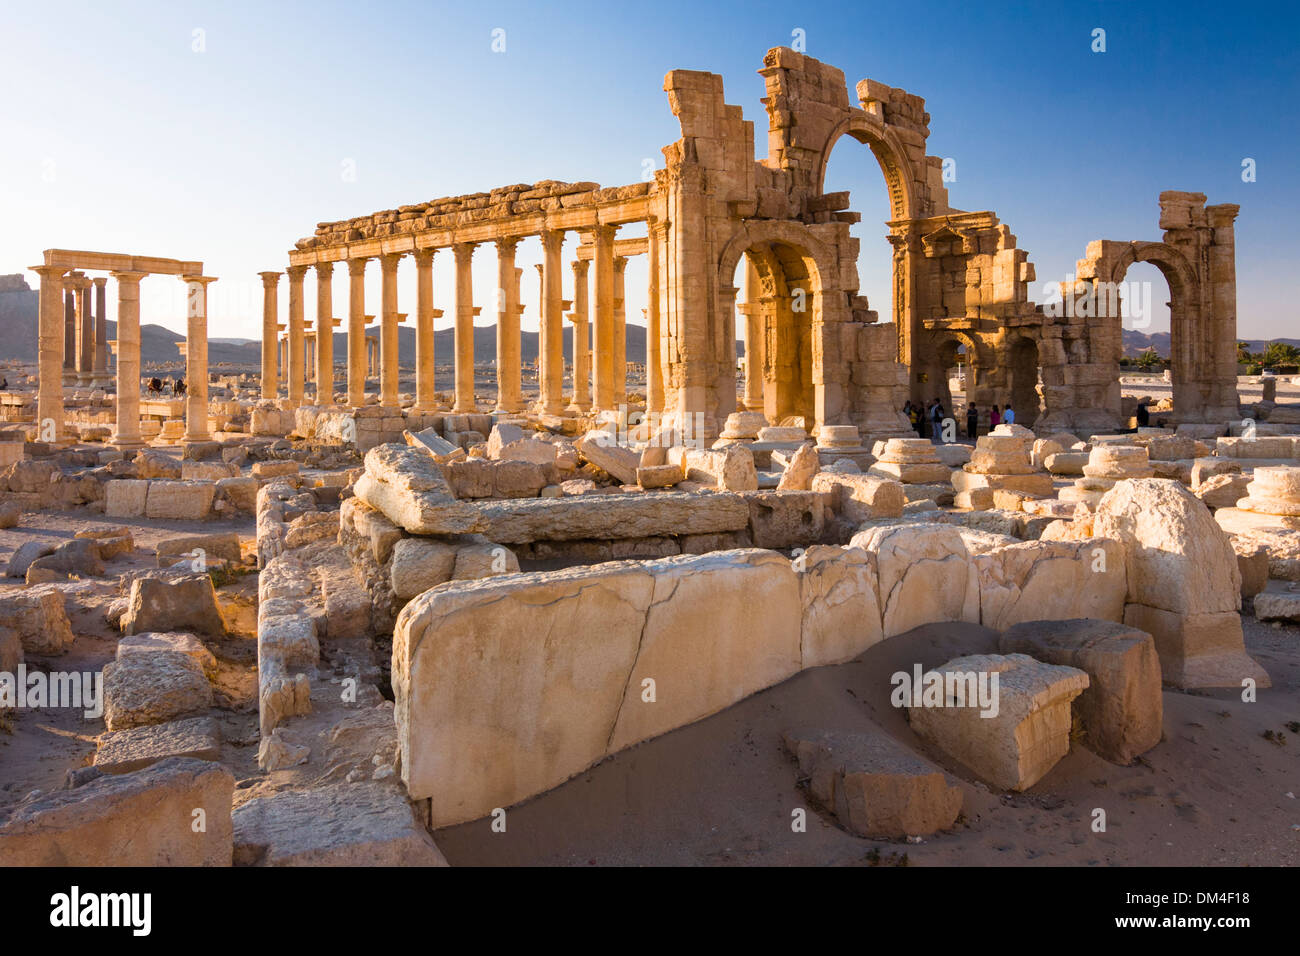 Monumental Arch of the ruins at Palmyra, Syria - Stock Image